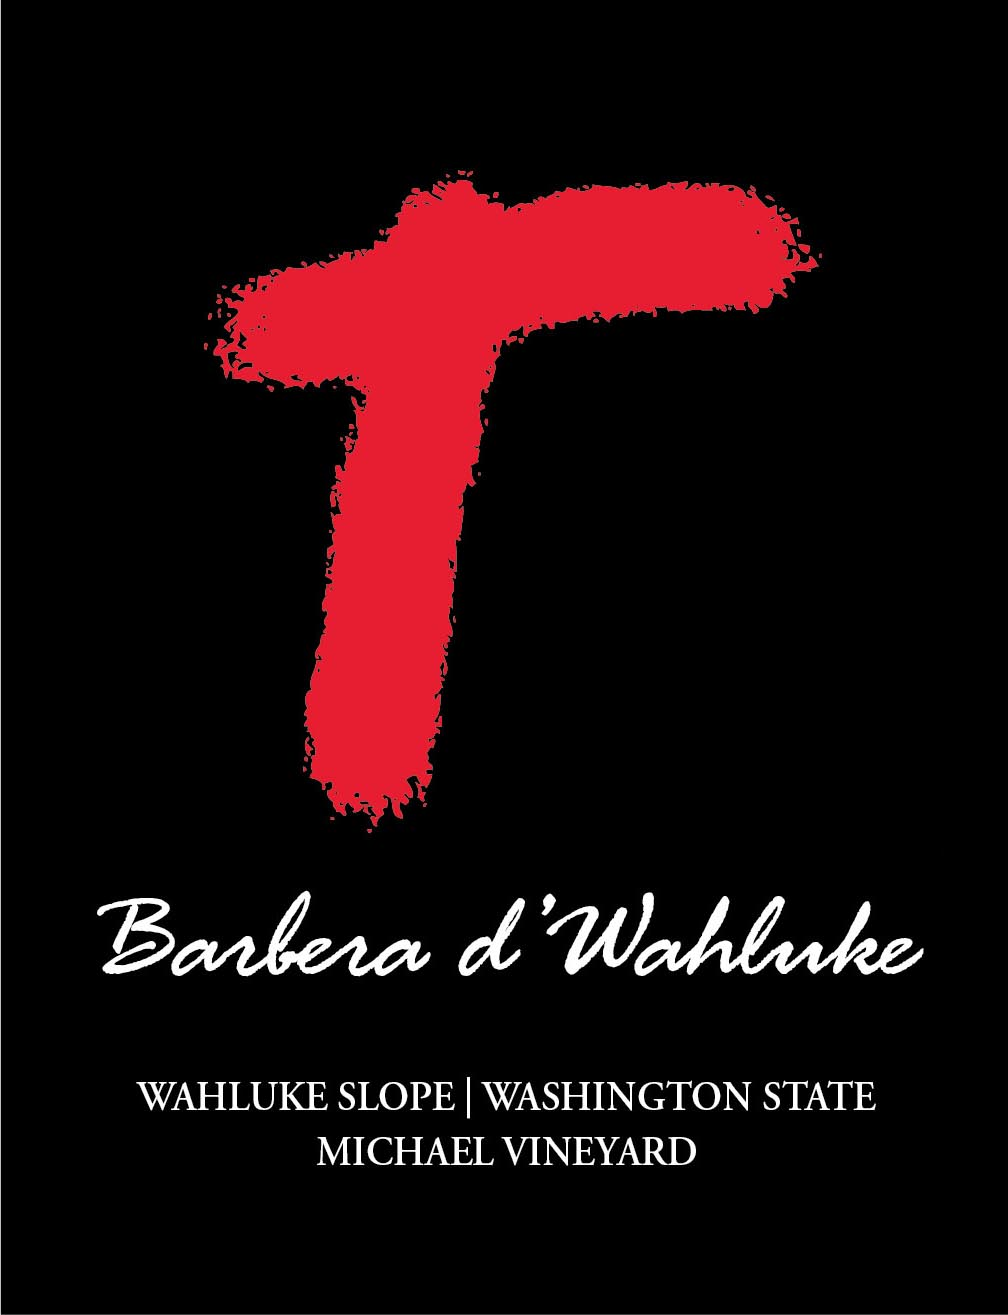 2015 Barbera d'Wahluke MAIN